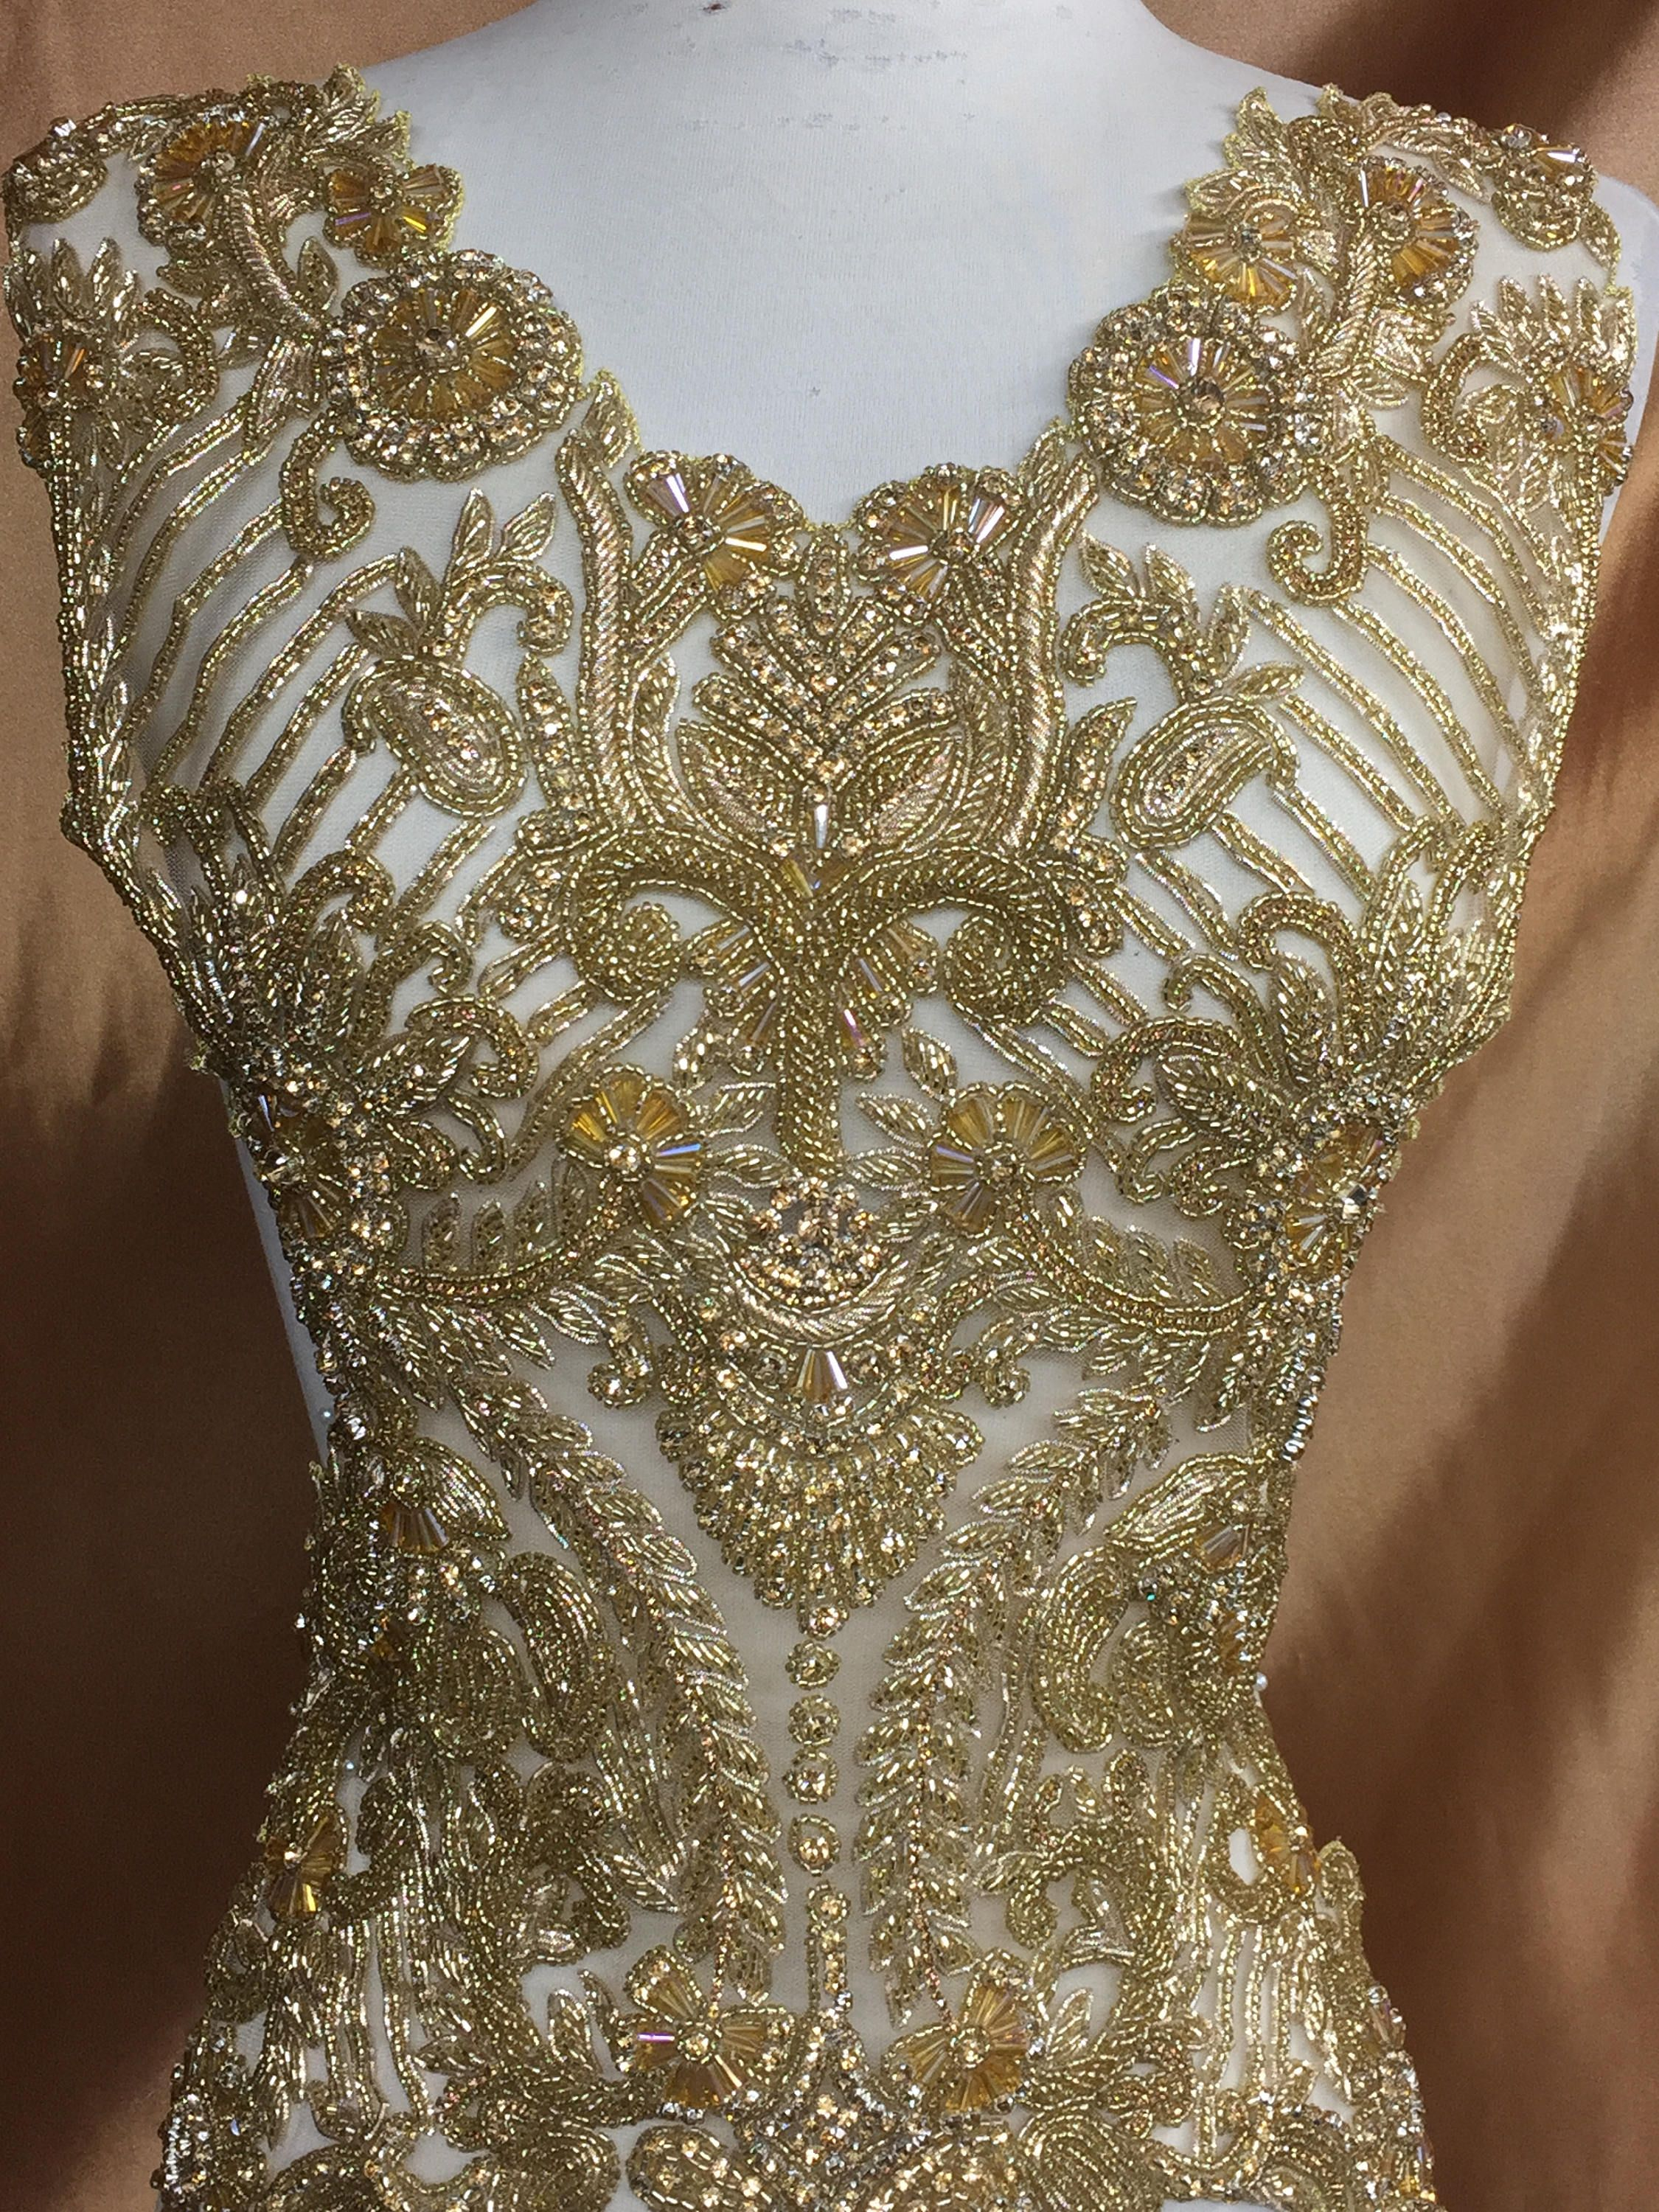 edb826c0bb Rhinestone Beaded Applique, Rhinestone Fabric, Wedding Dress ...